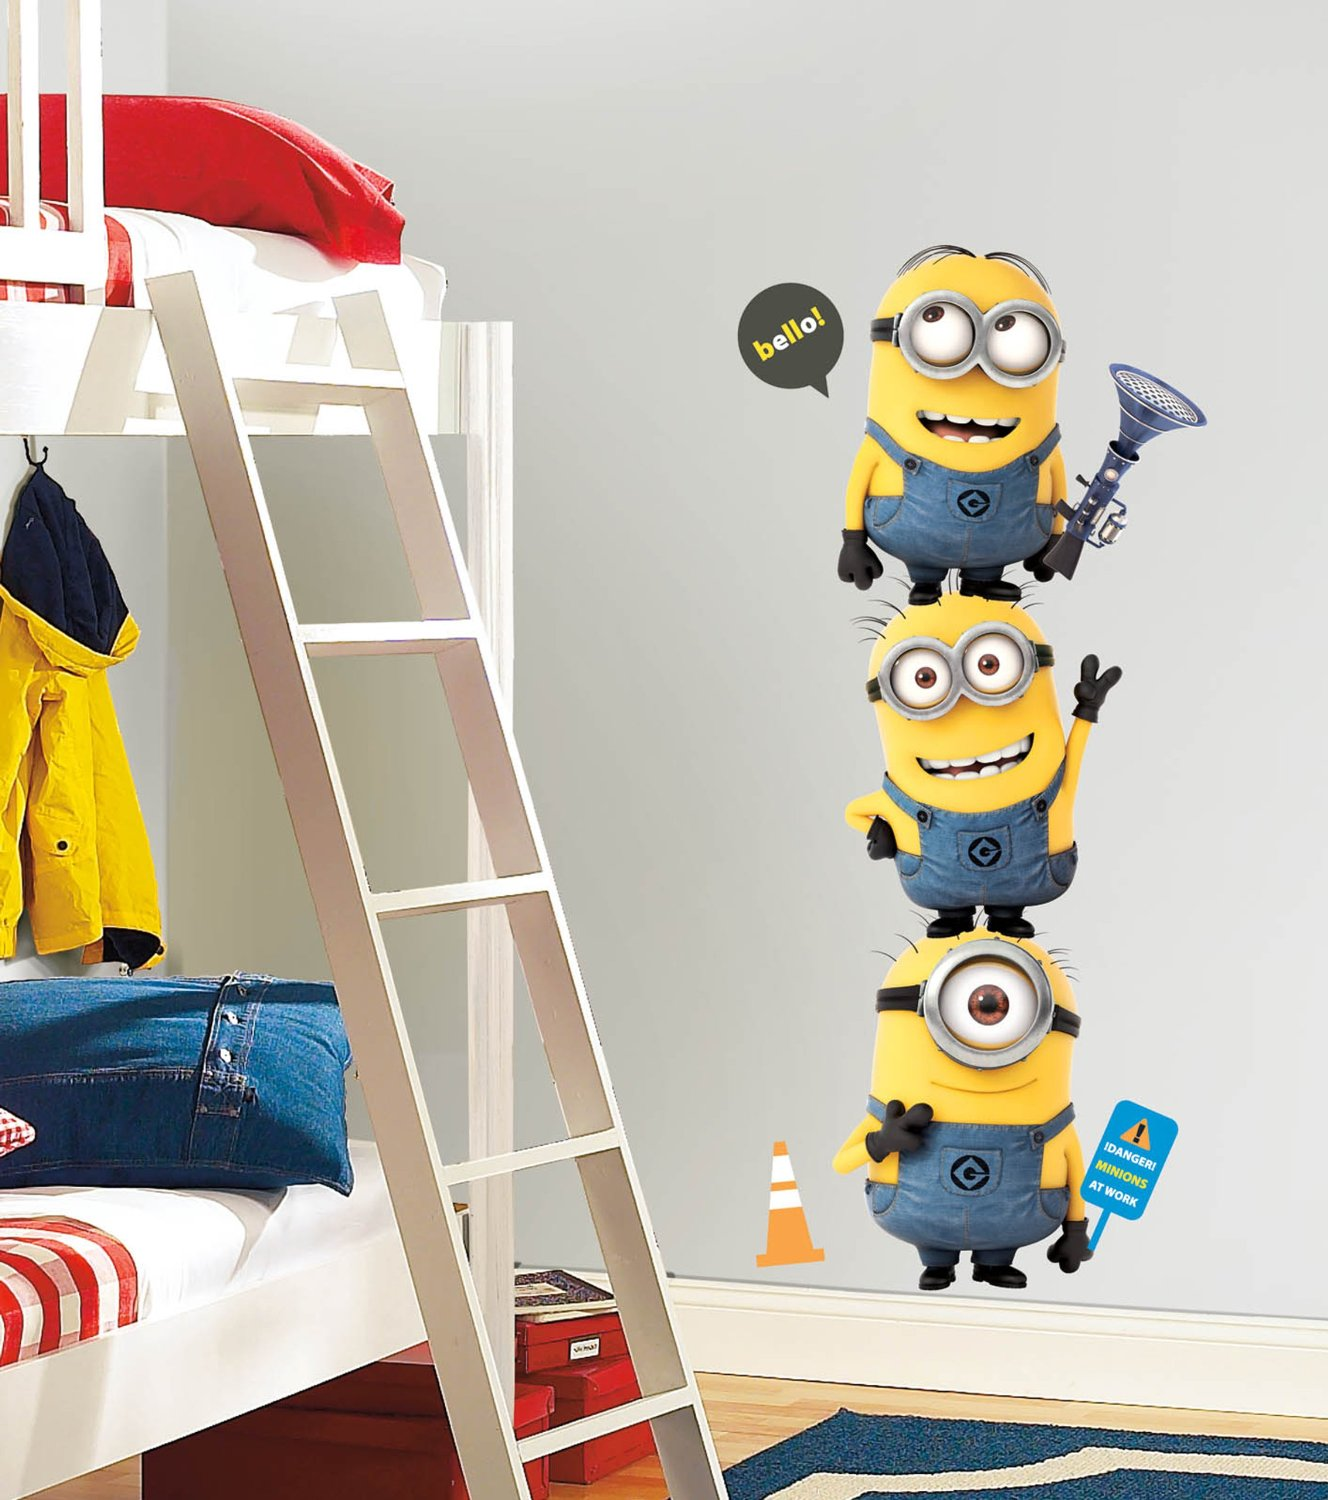 You searched for: minion! Etsy is the home to thousands of handmade, vintage, and one-of-a-kind products and gifts related to your search. No matter what you're looking for or where you are in the world, our global marketplace of sellers can help you find unique and affordable options. Let's get started!